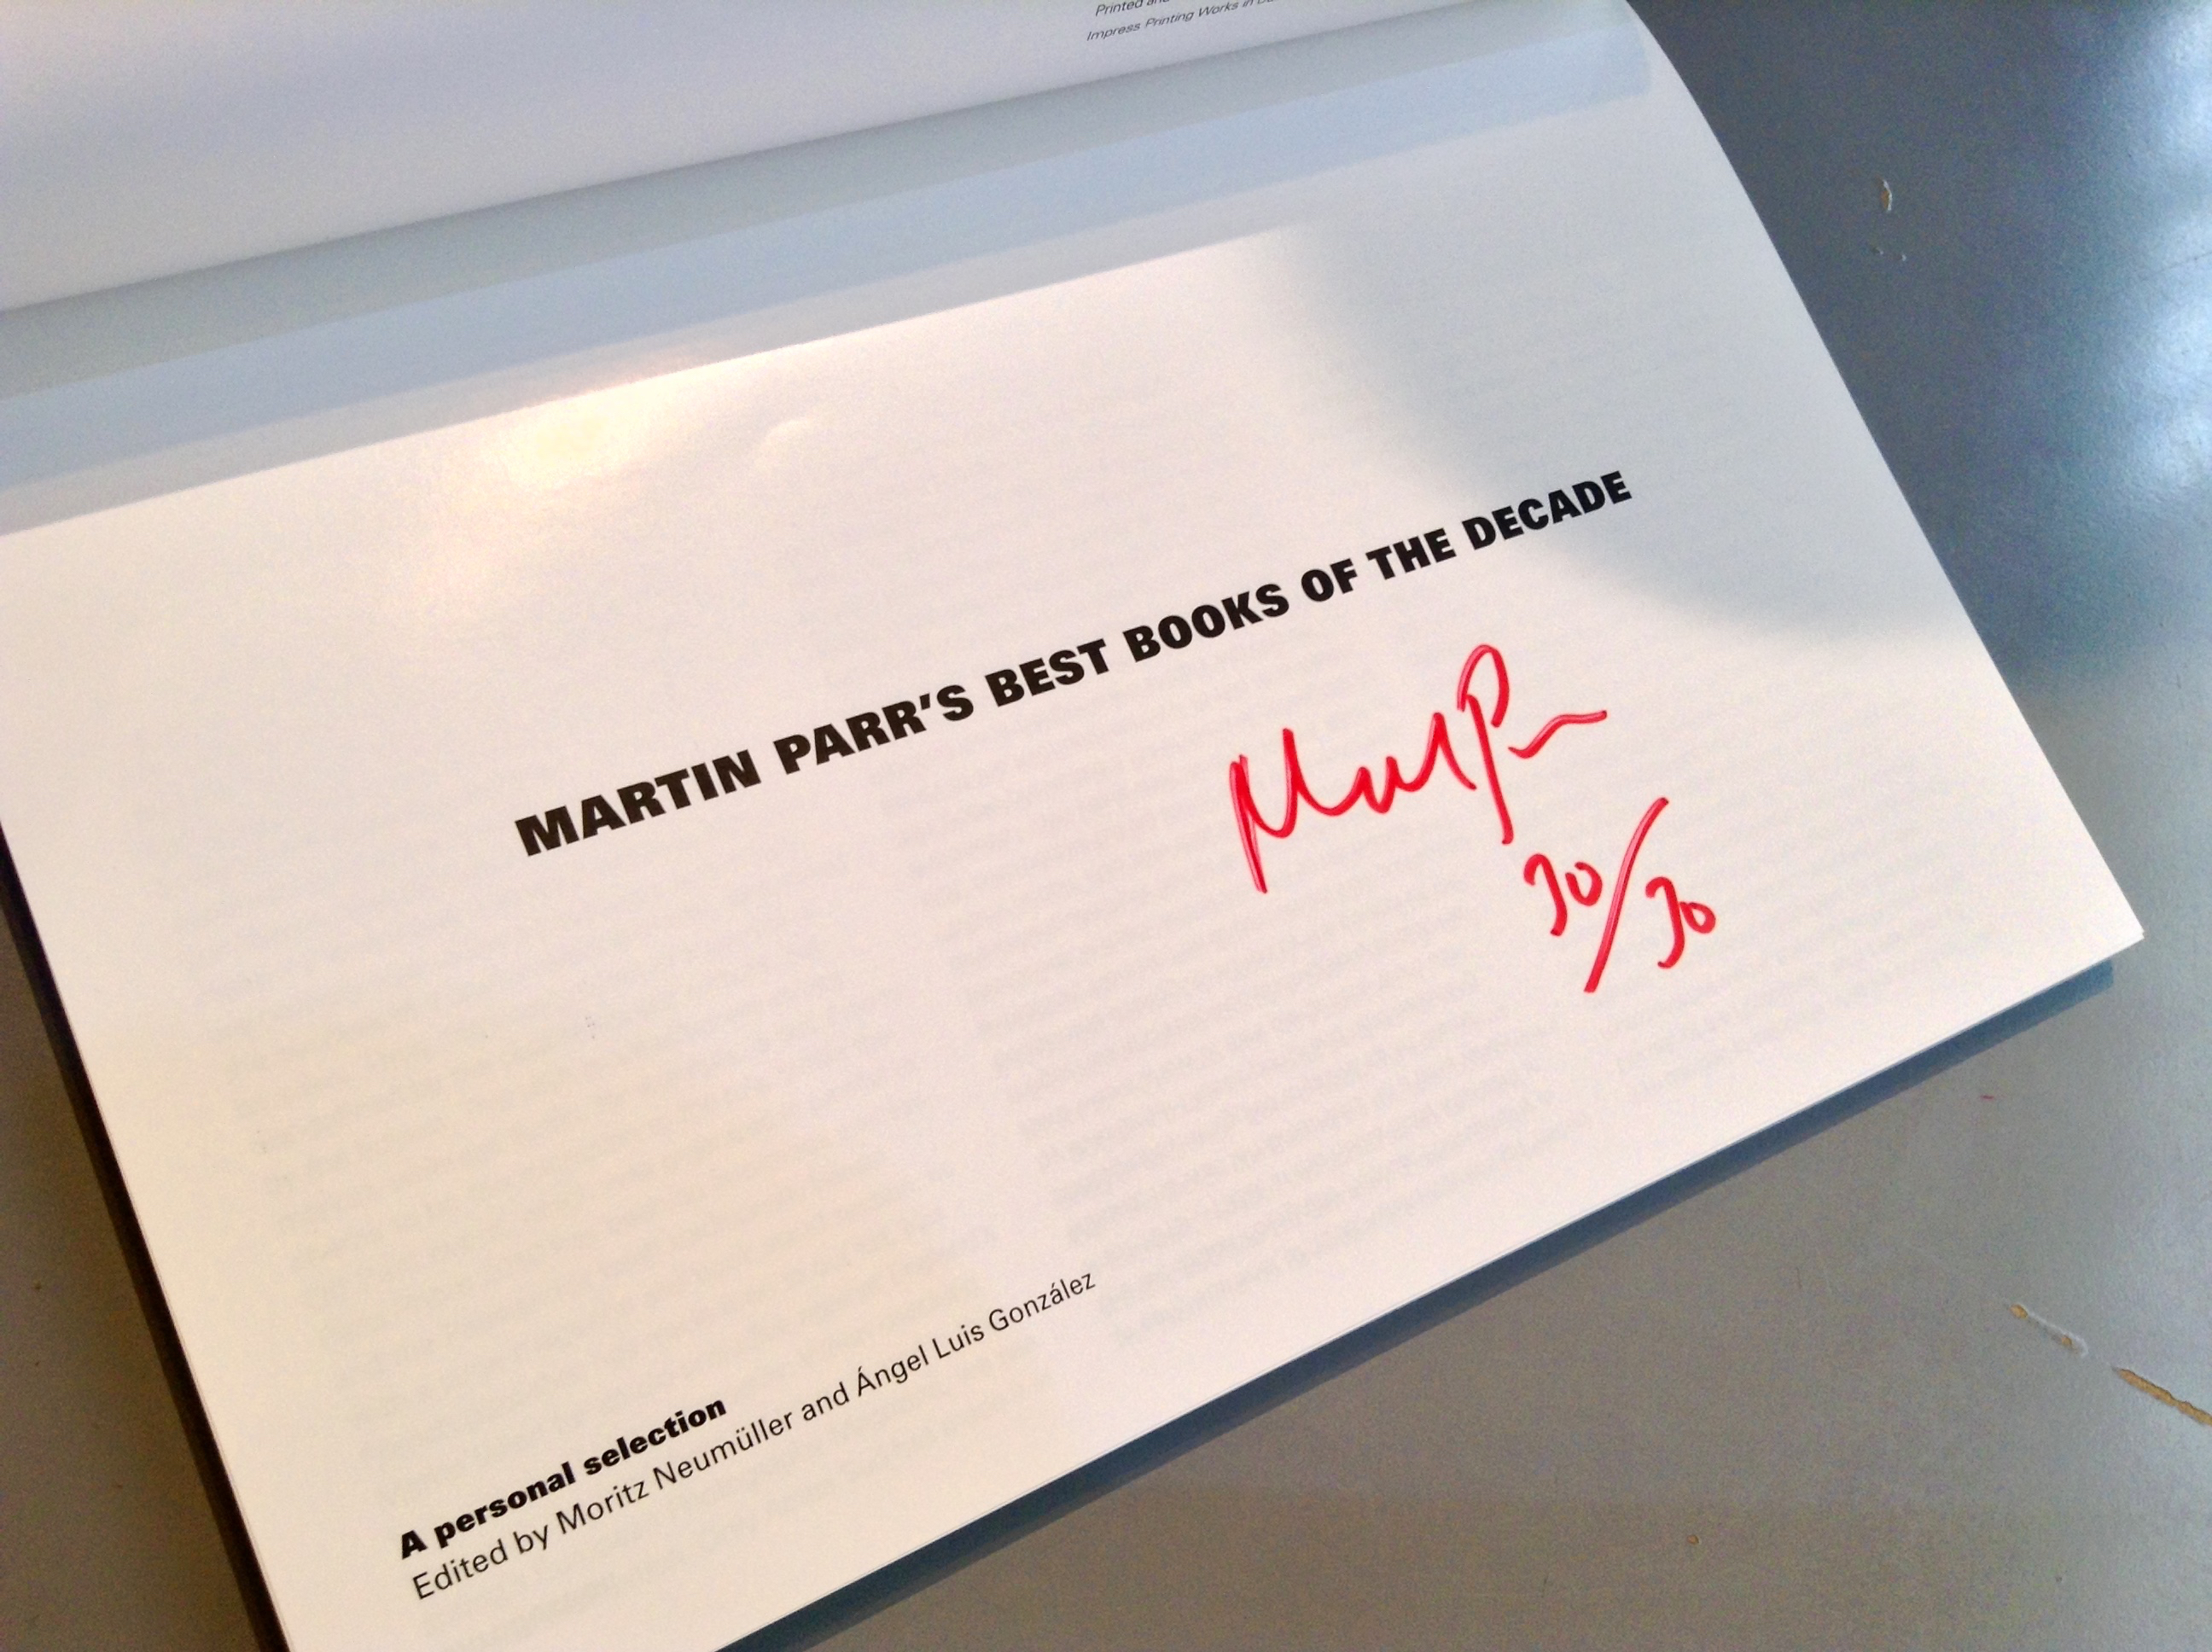 Martin Parr's Best Books of the Decade